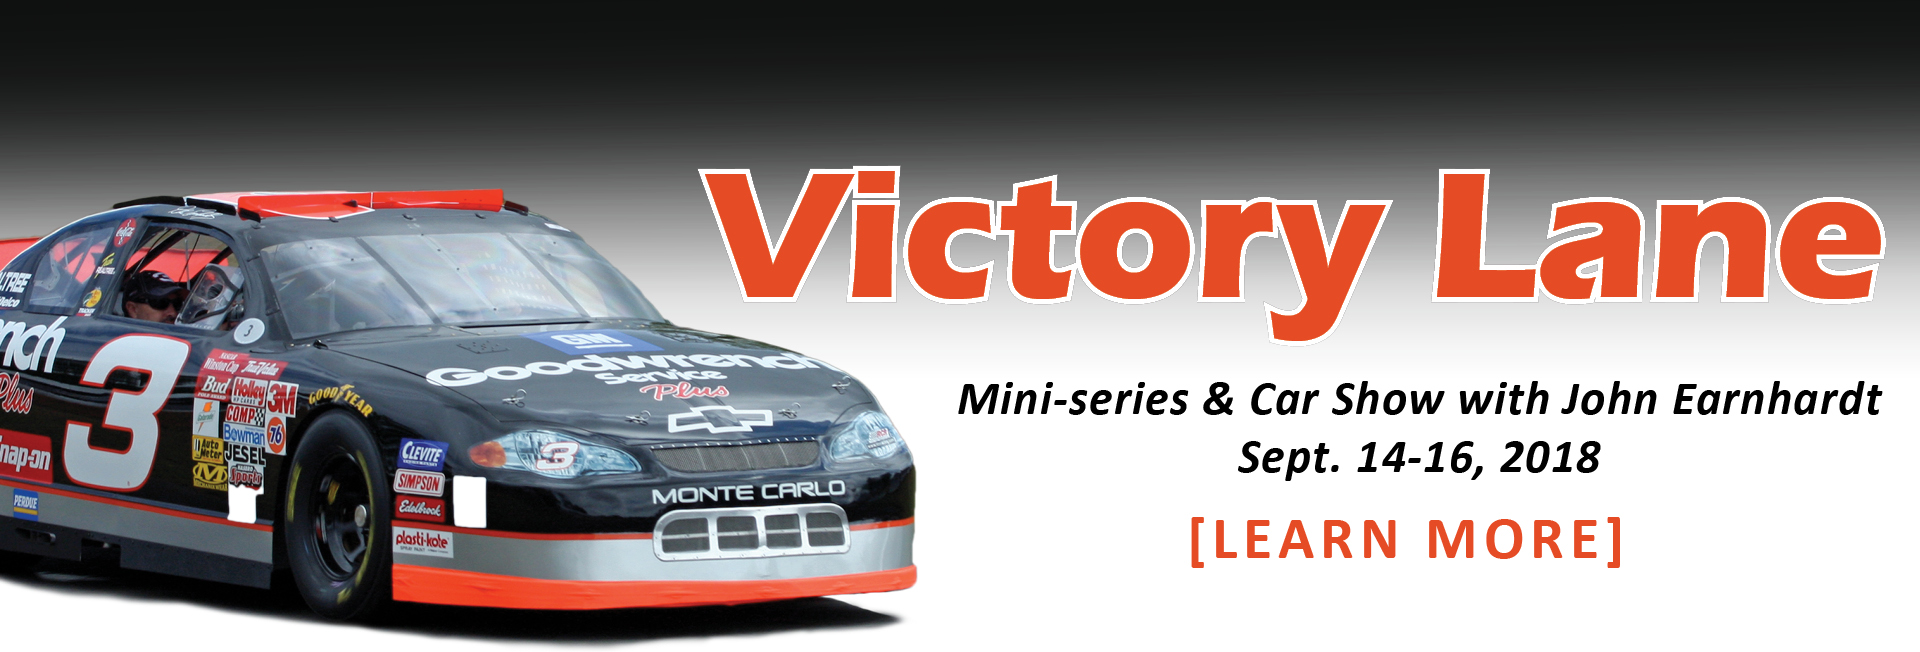 Victory Lane - mini-series by John Earnhardt starts Friday, Sept. 14 @ 7:00 p.m.